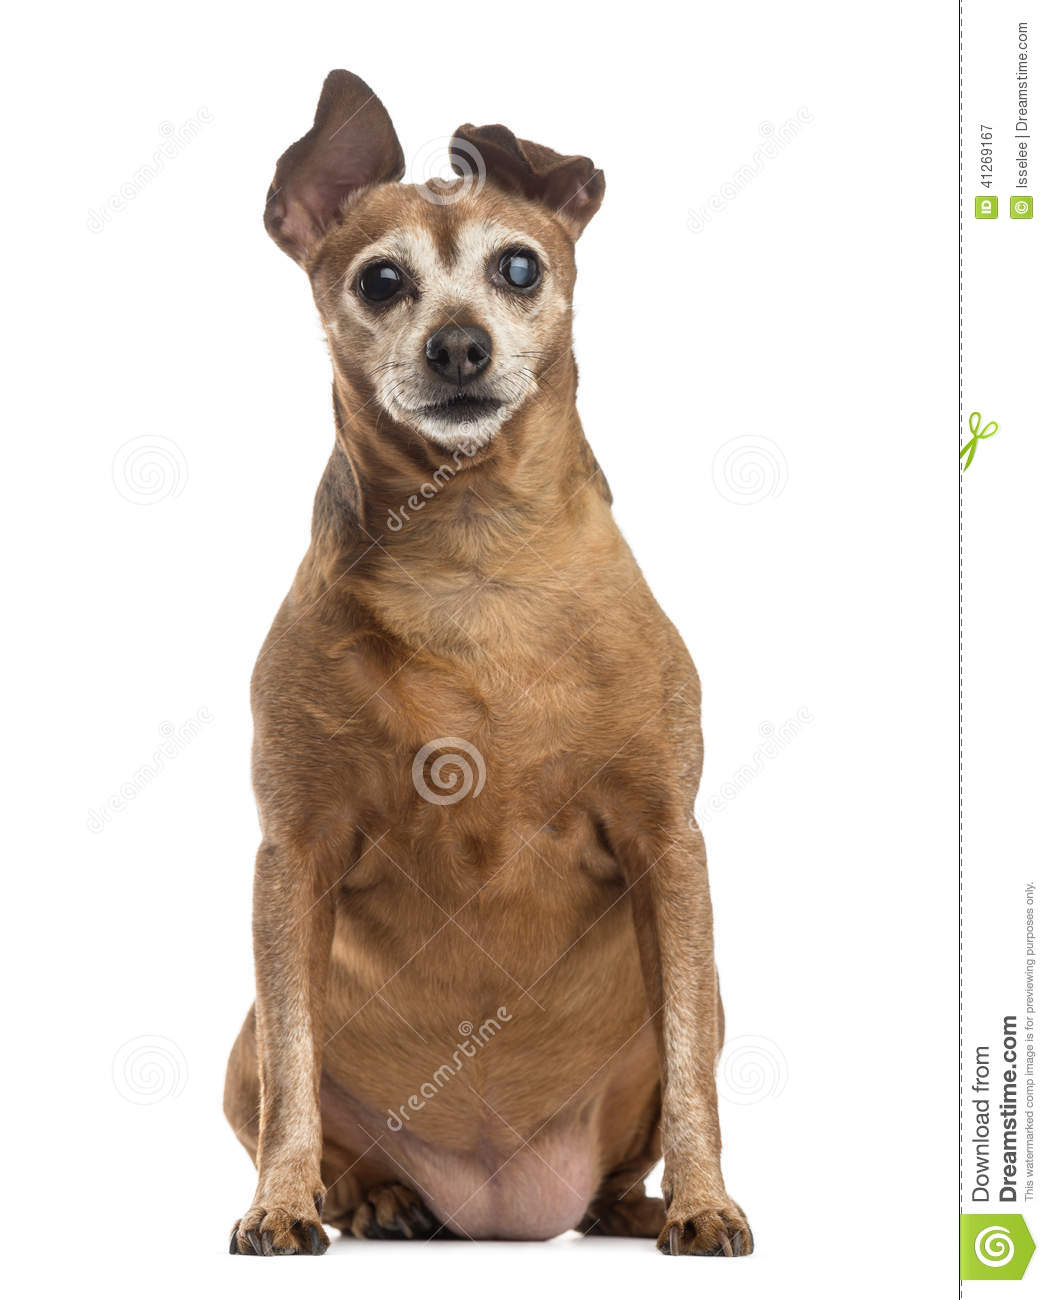 Old and fat dog (9 years old)